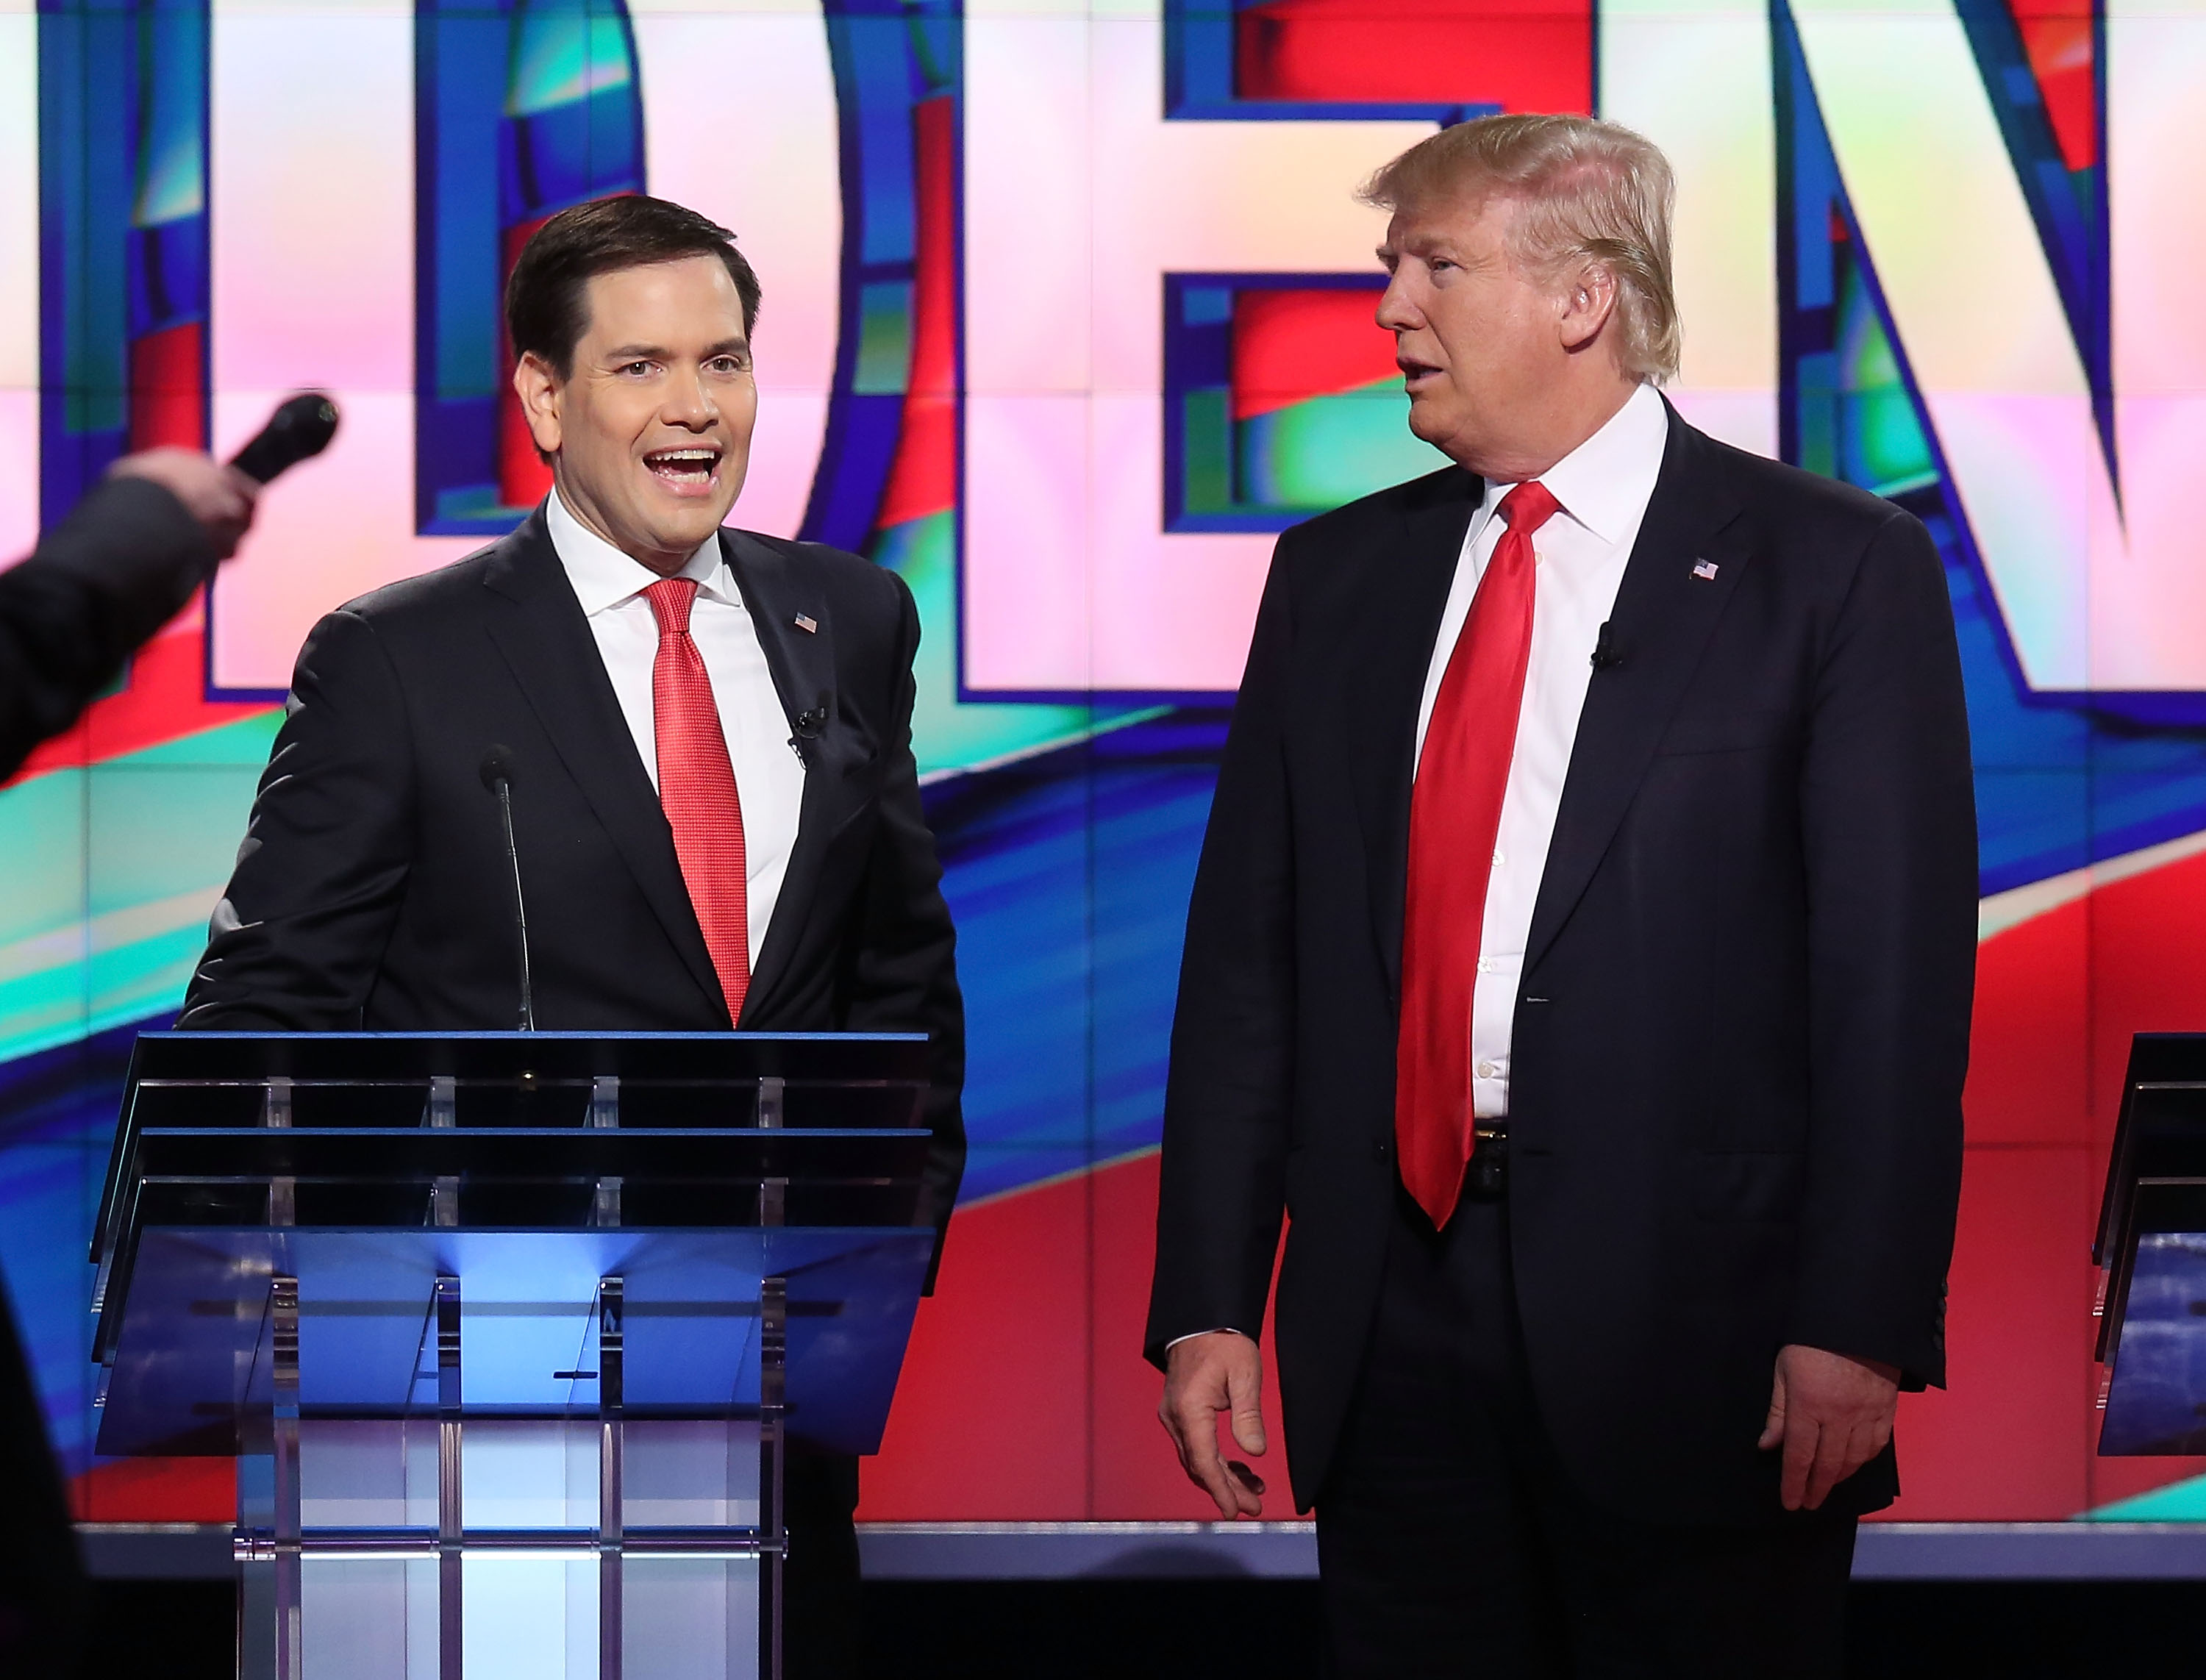 The Republican debate was very substantive. Too bad that substance was wrong.